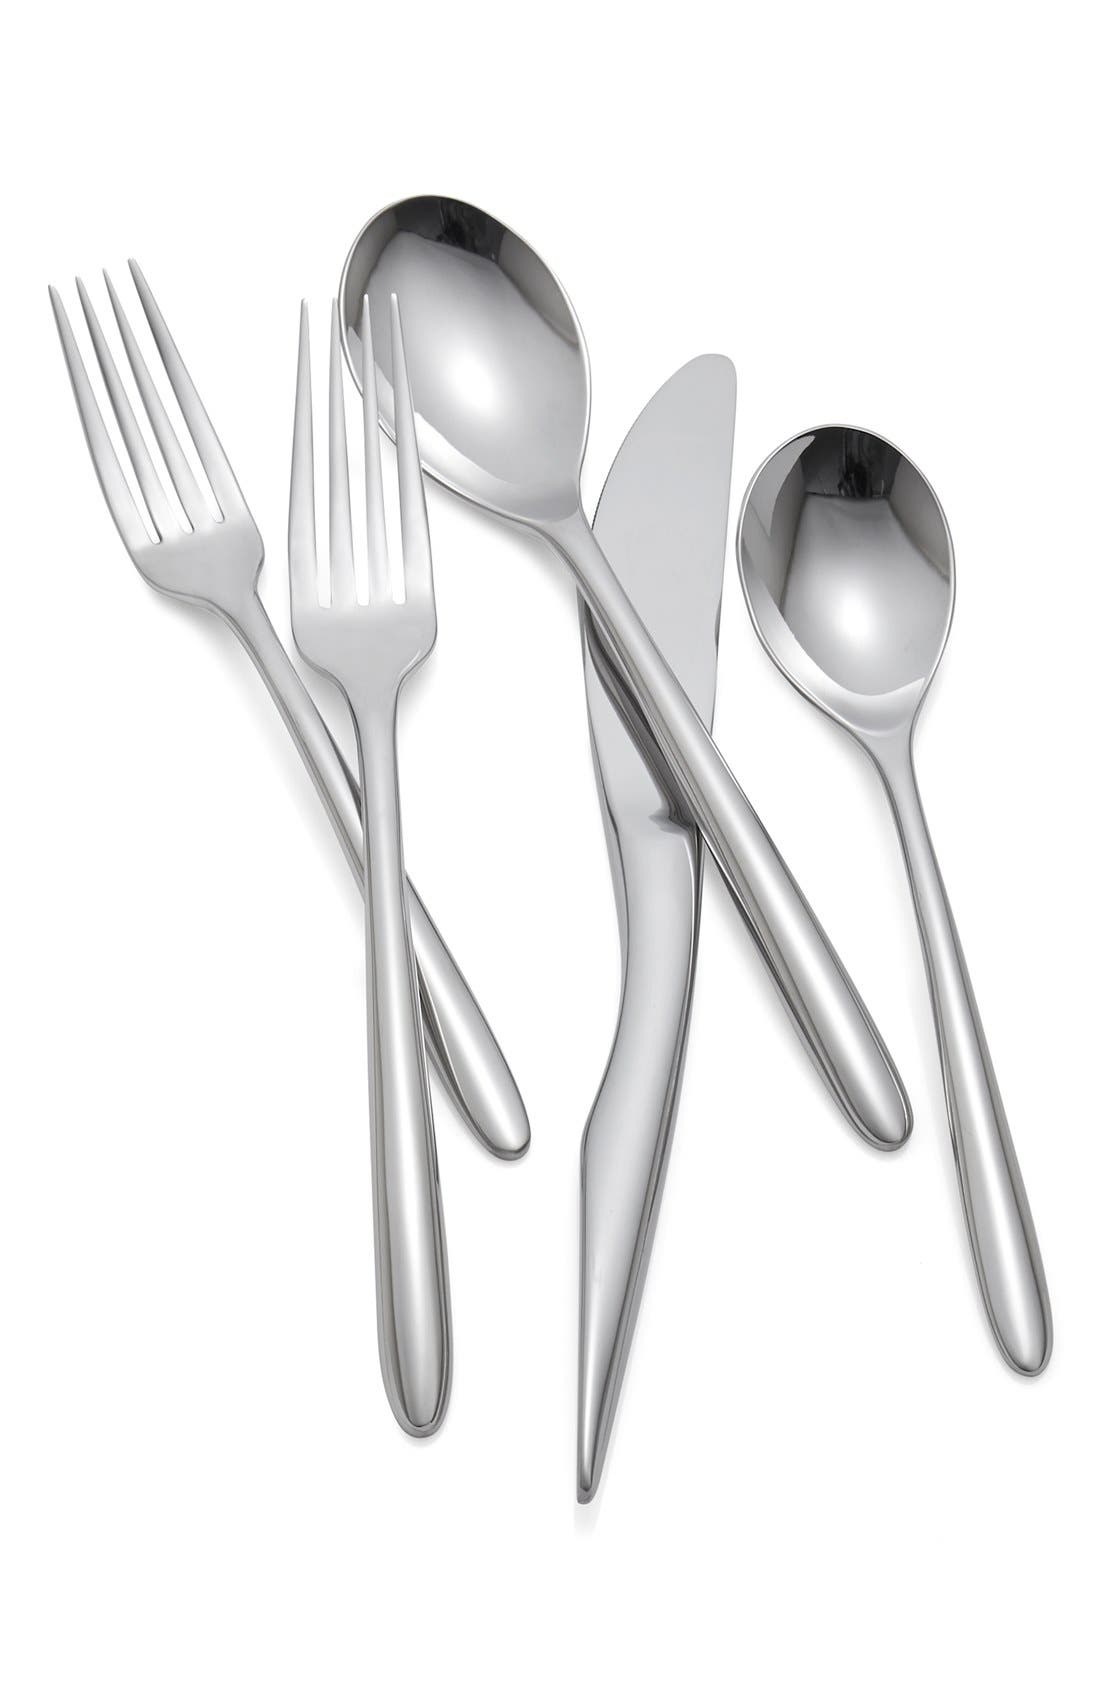 'Dune' 5-Piece Stainless Steel Table Setting,                         Main,                         color, 040